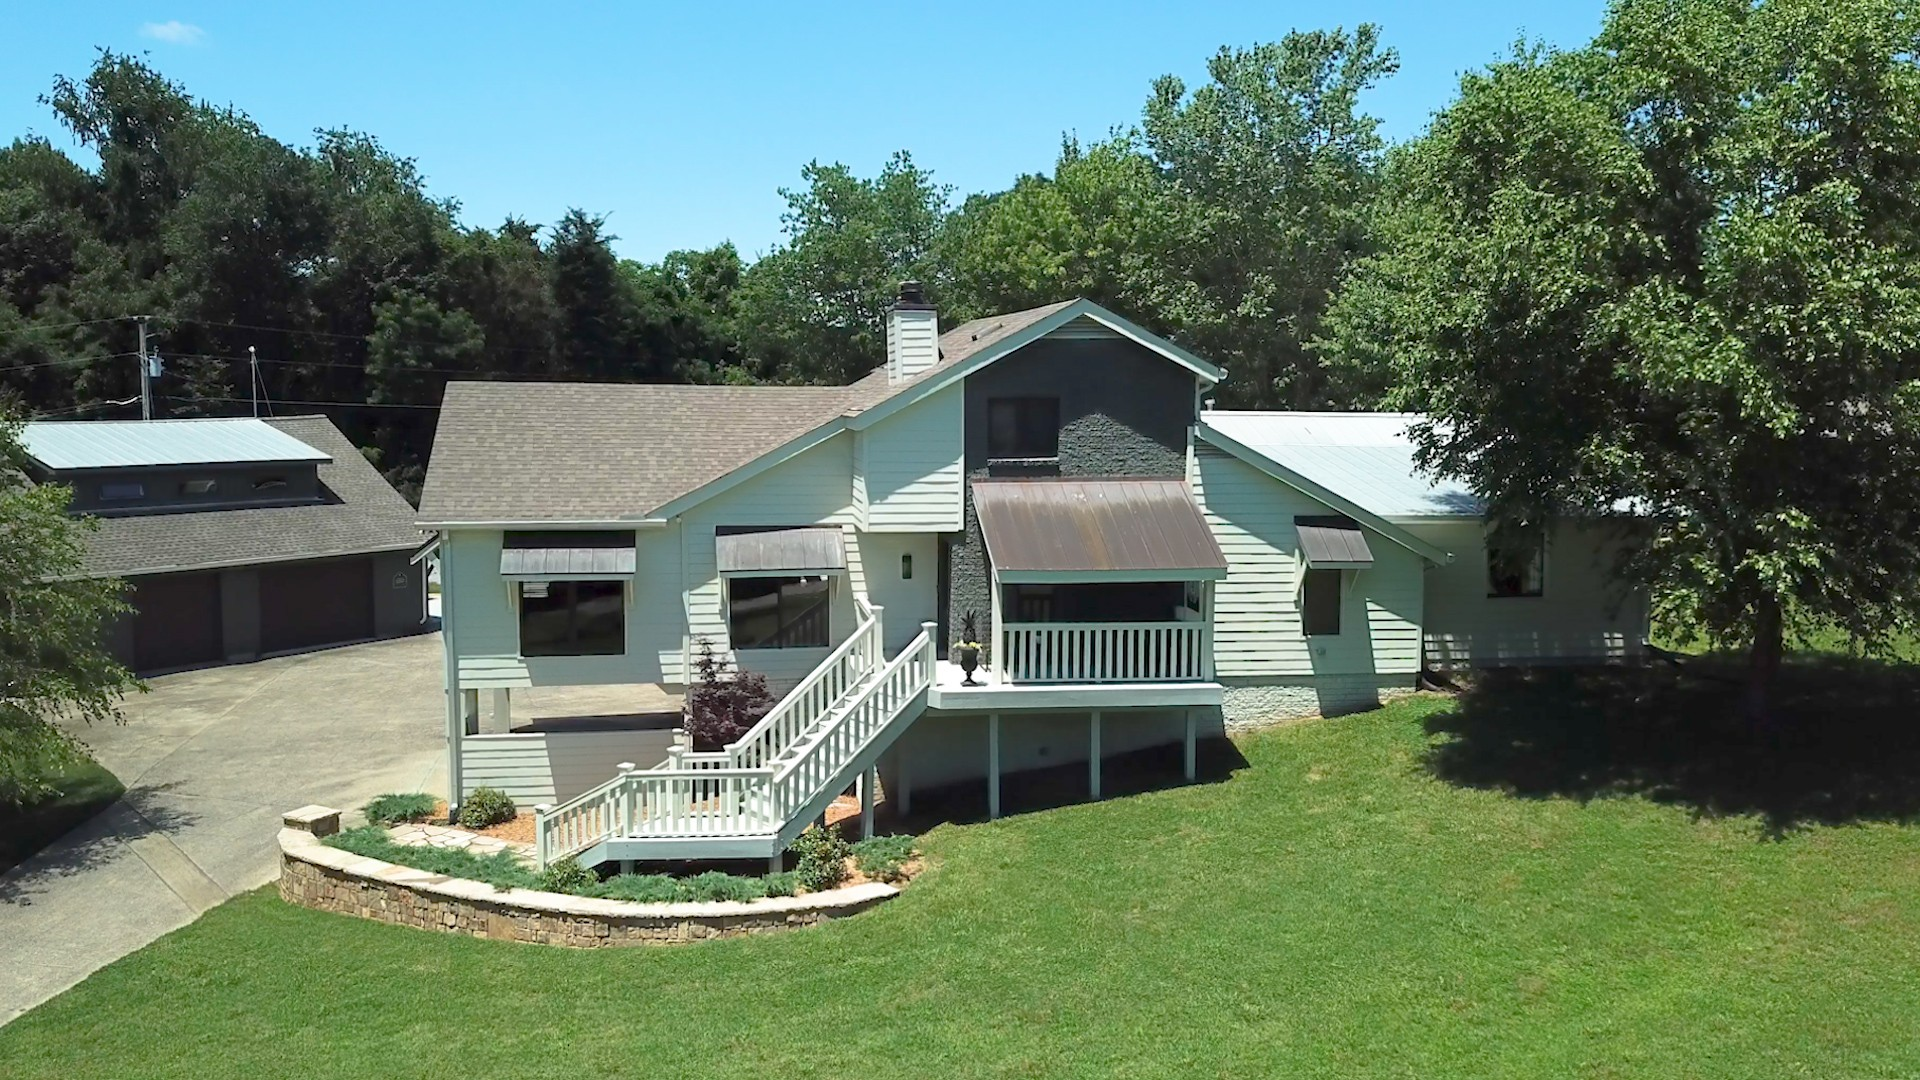 3759 Saundersville Ferry Rd Property Photo - Mount Juliet, TN real estate listing